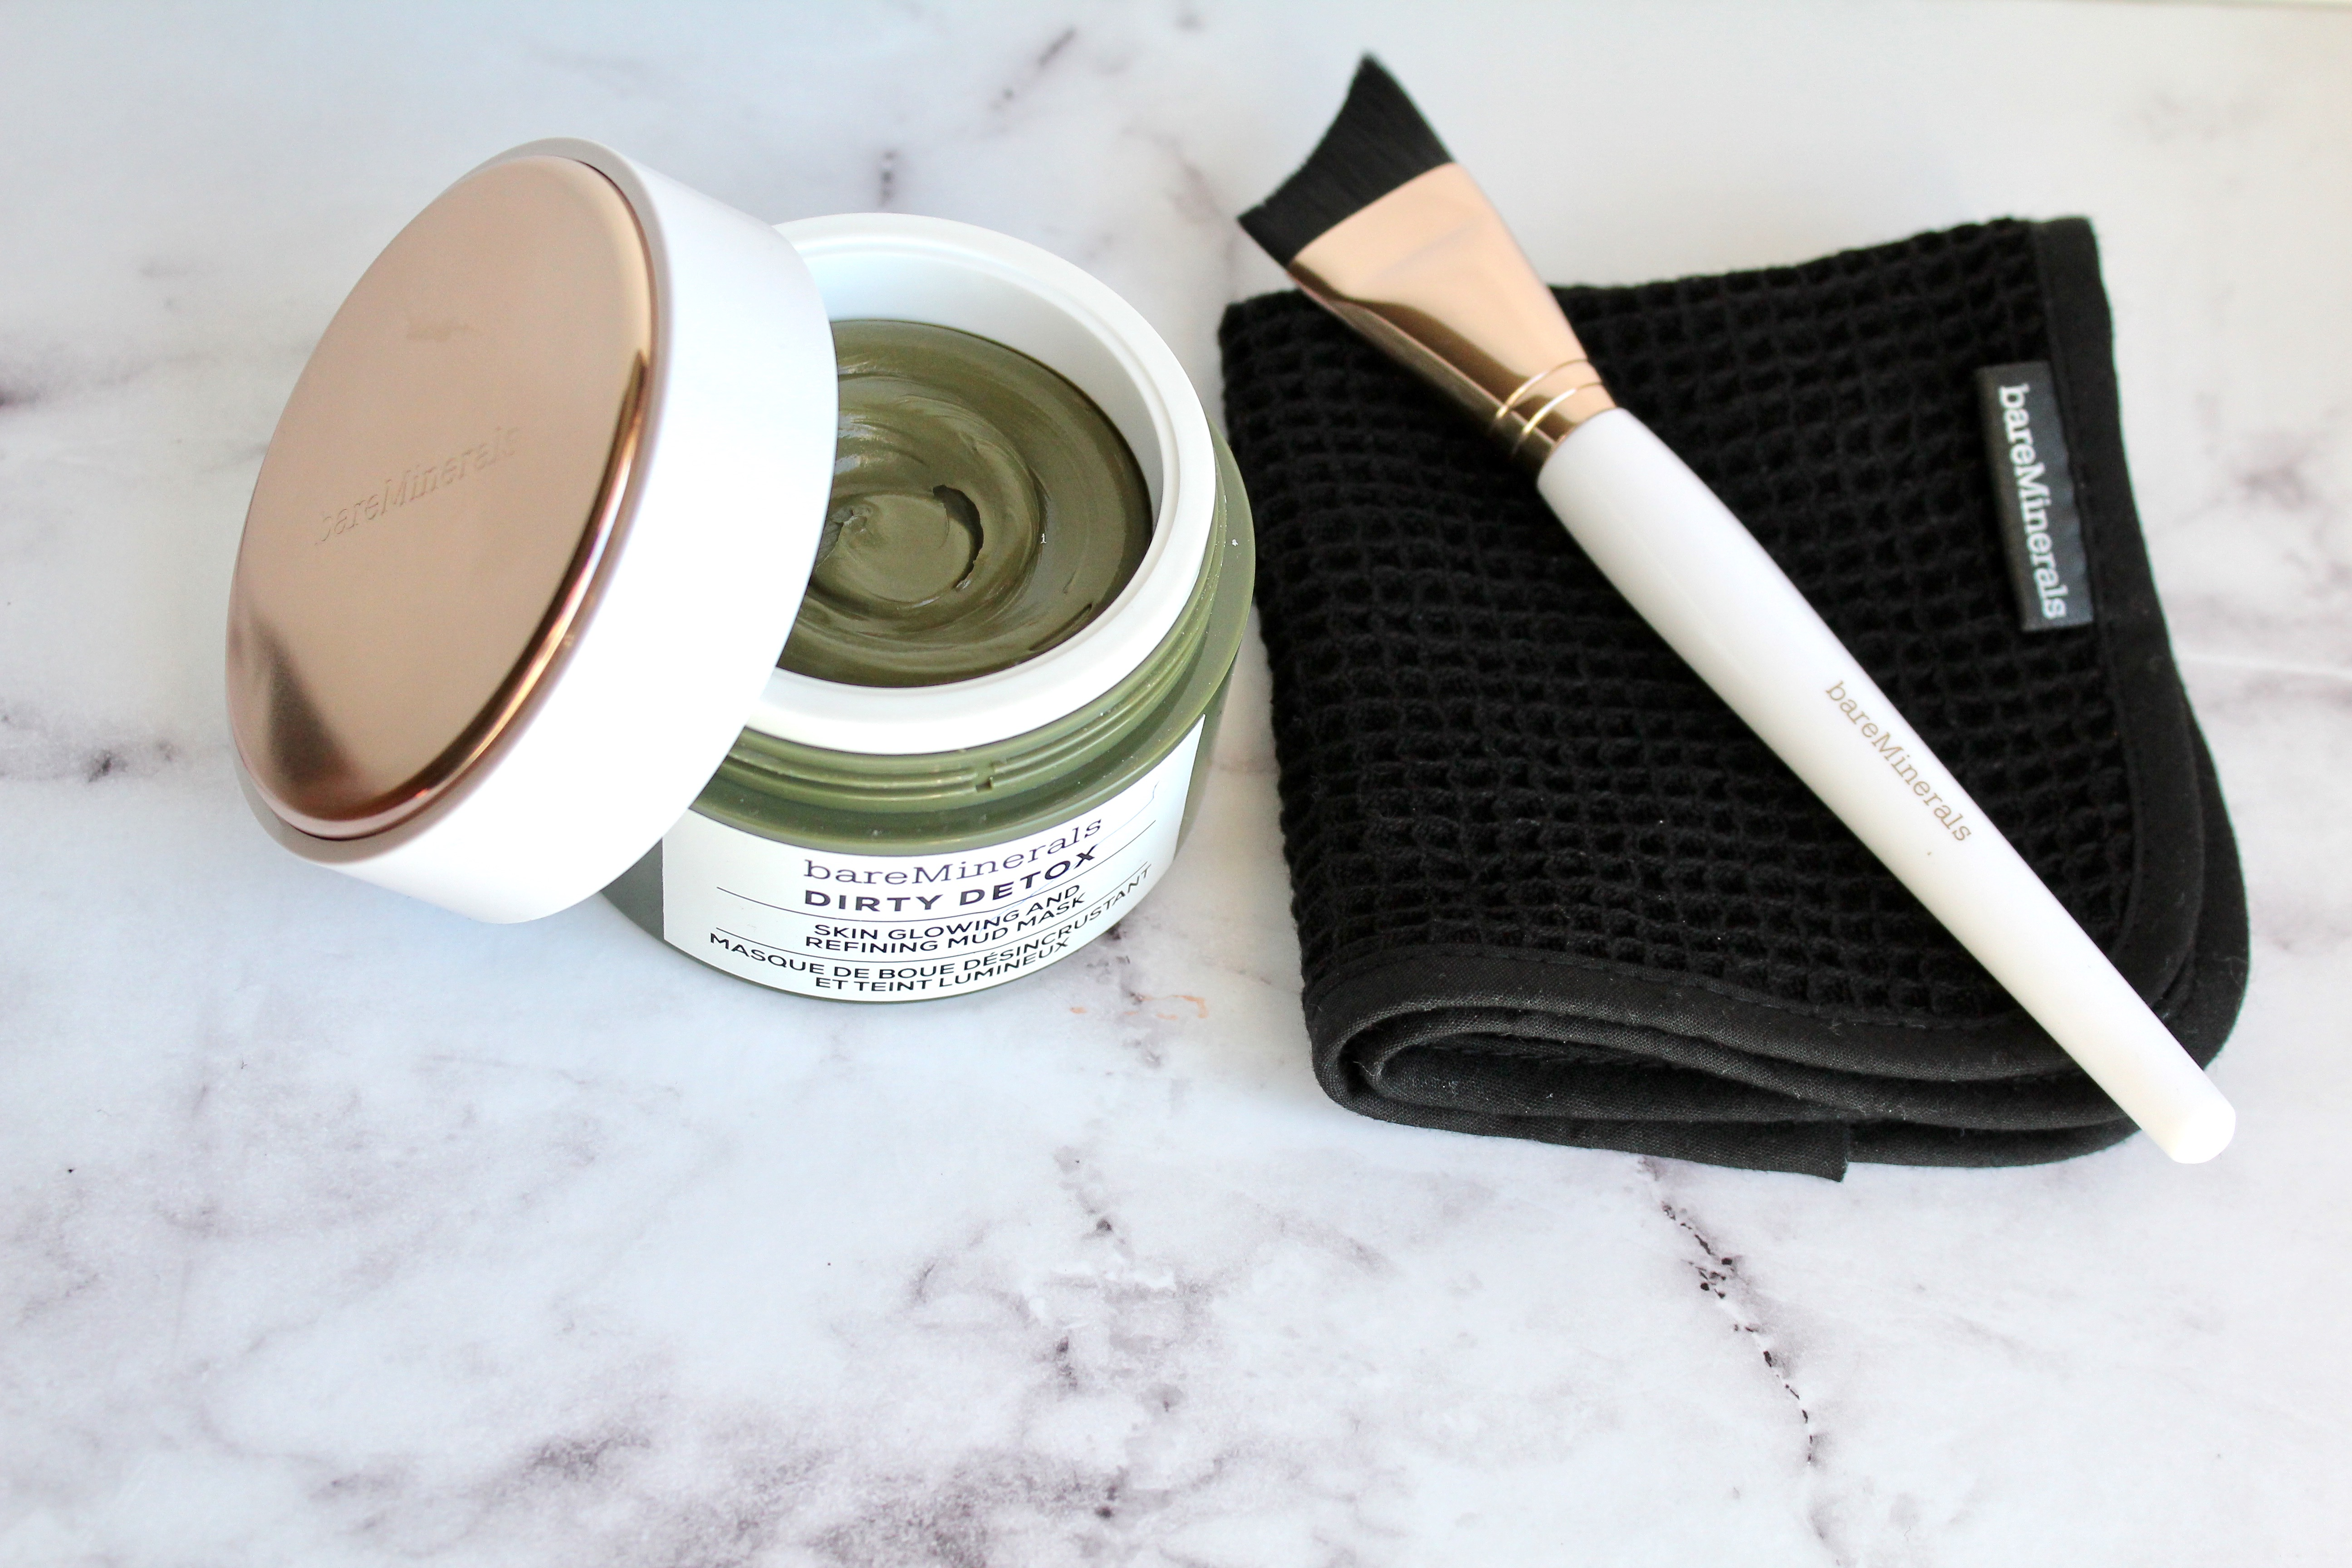 Dirty Detox Skin Glowing & Refining Mud Mask by bareMinerals #11